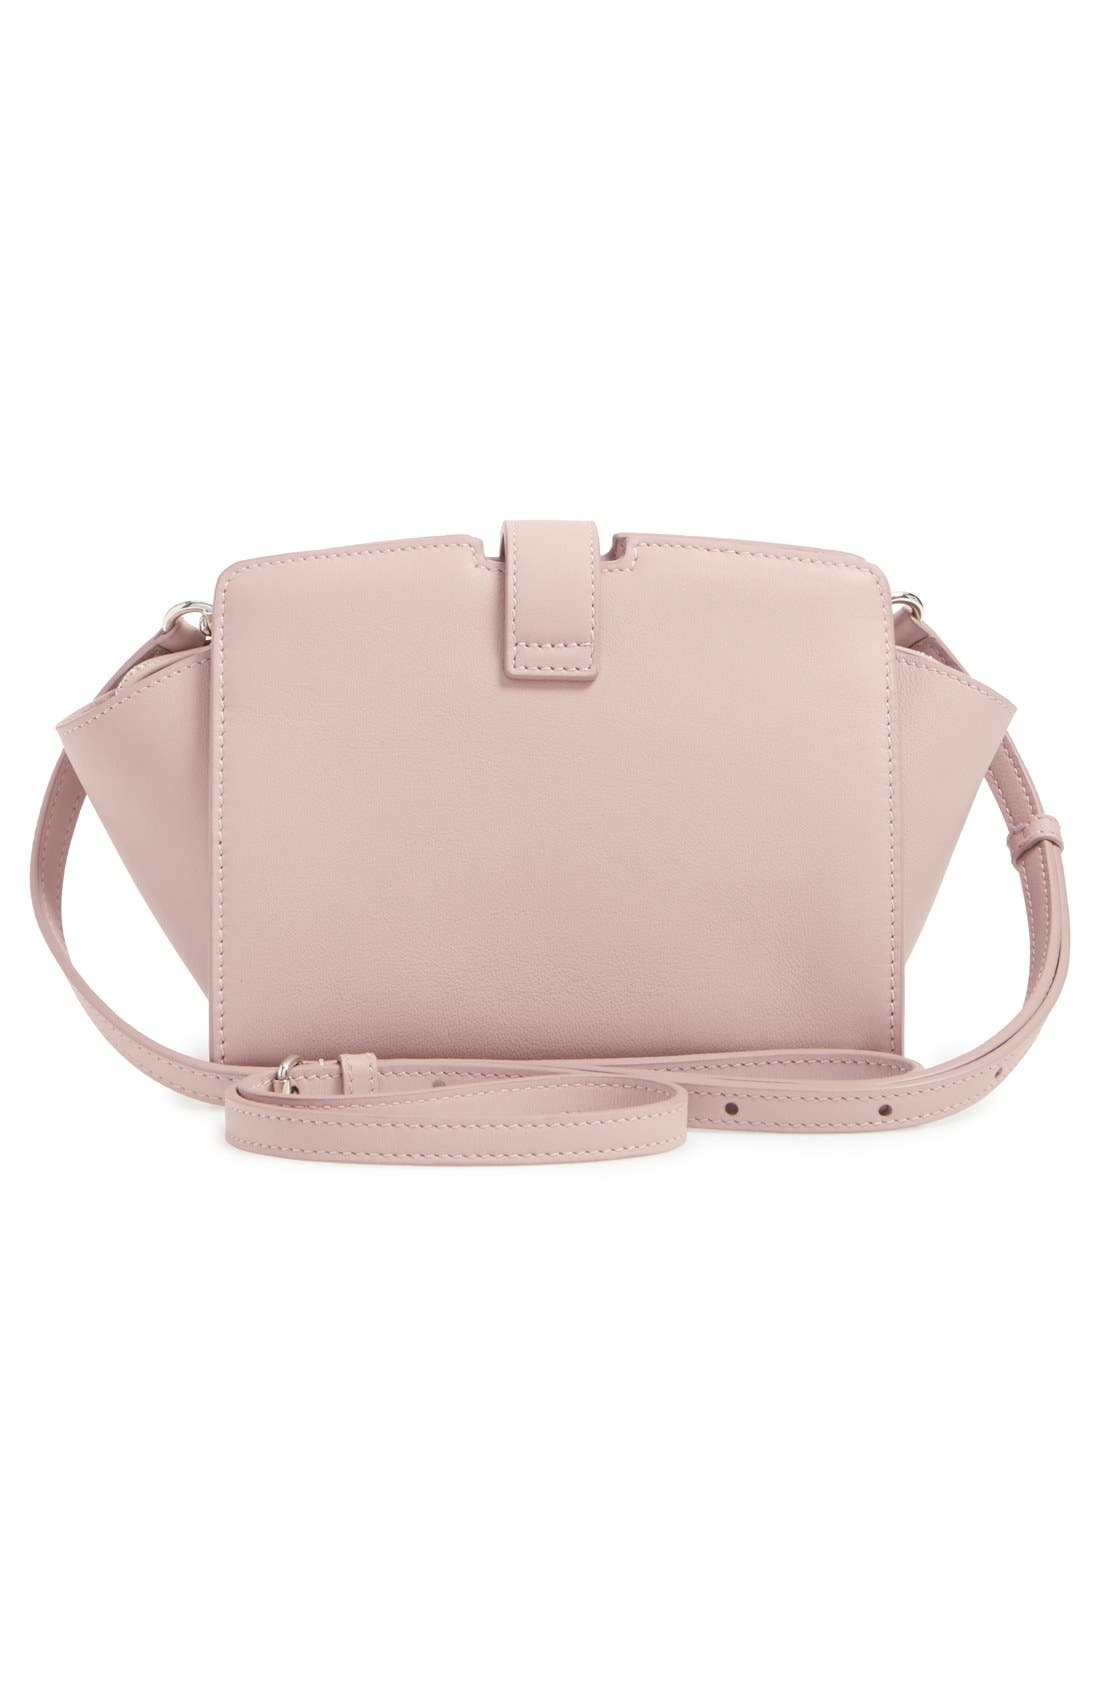 Toy Cabas Leather Crossbody Bag,                             Alternate thumbnail 3, color,                             Rose Antic